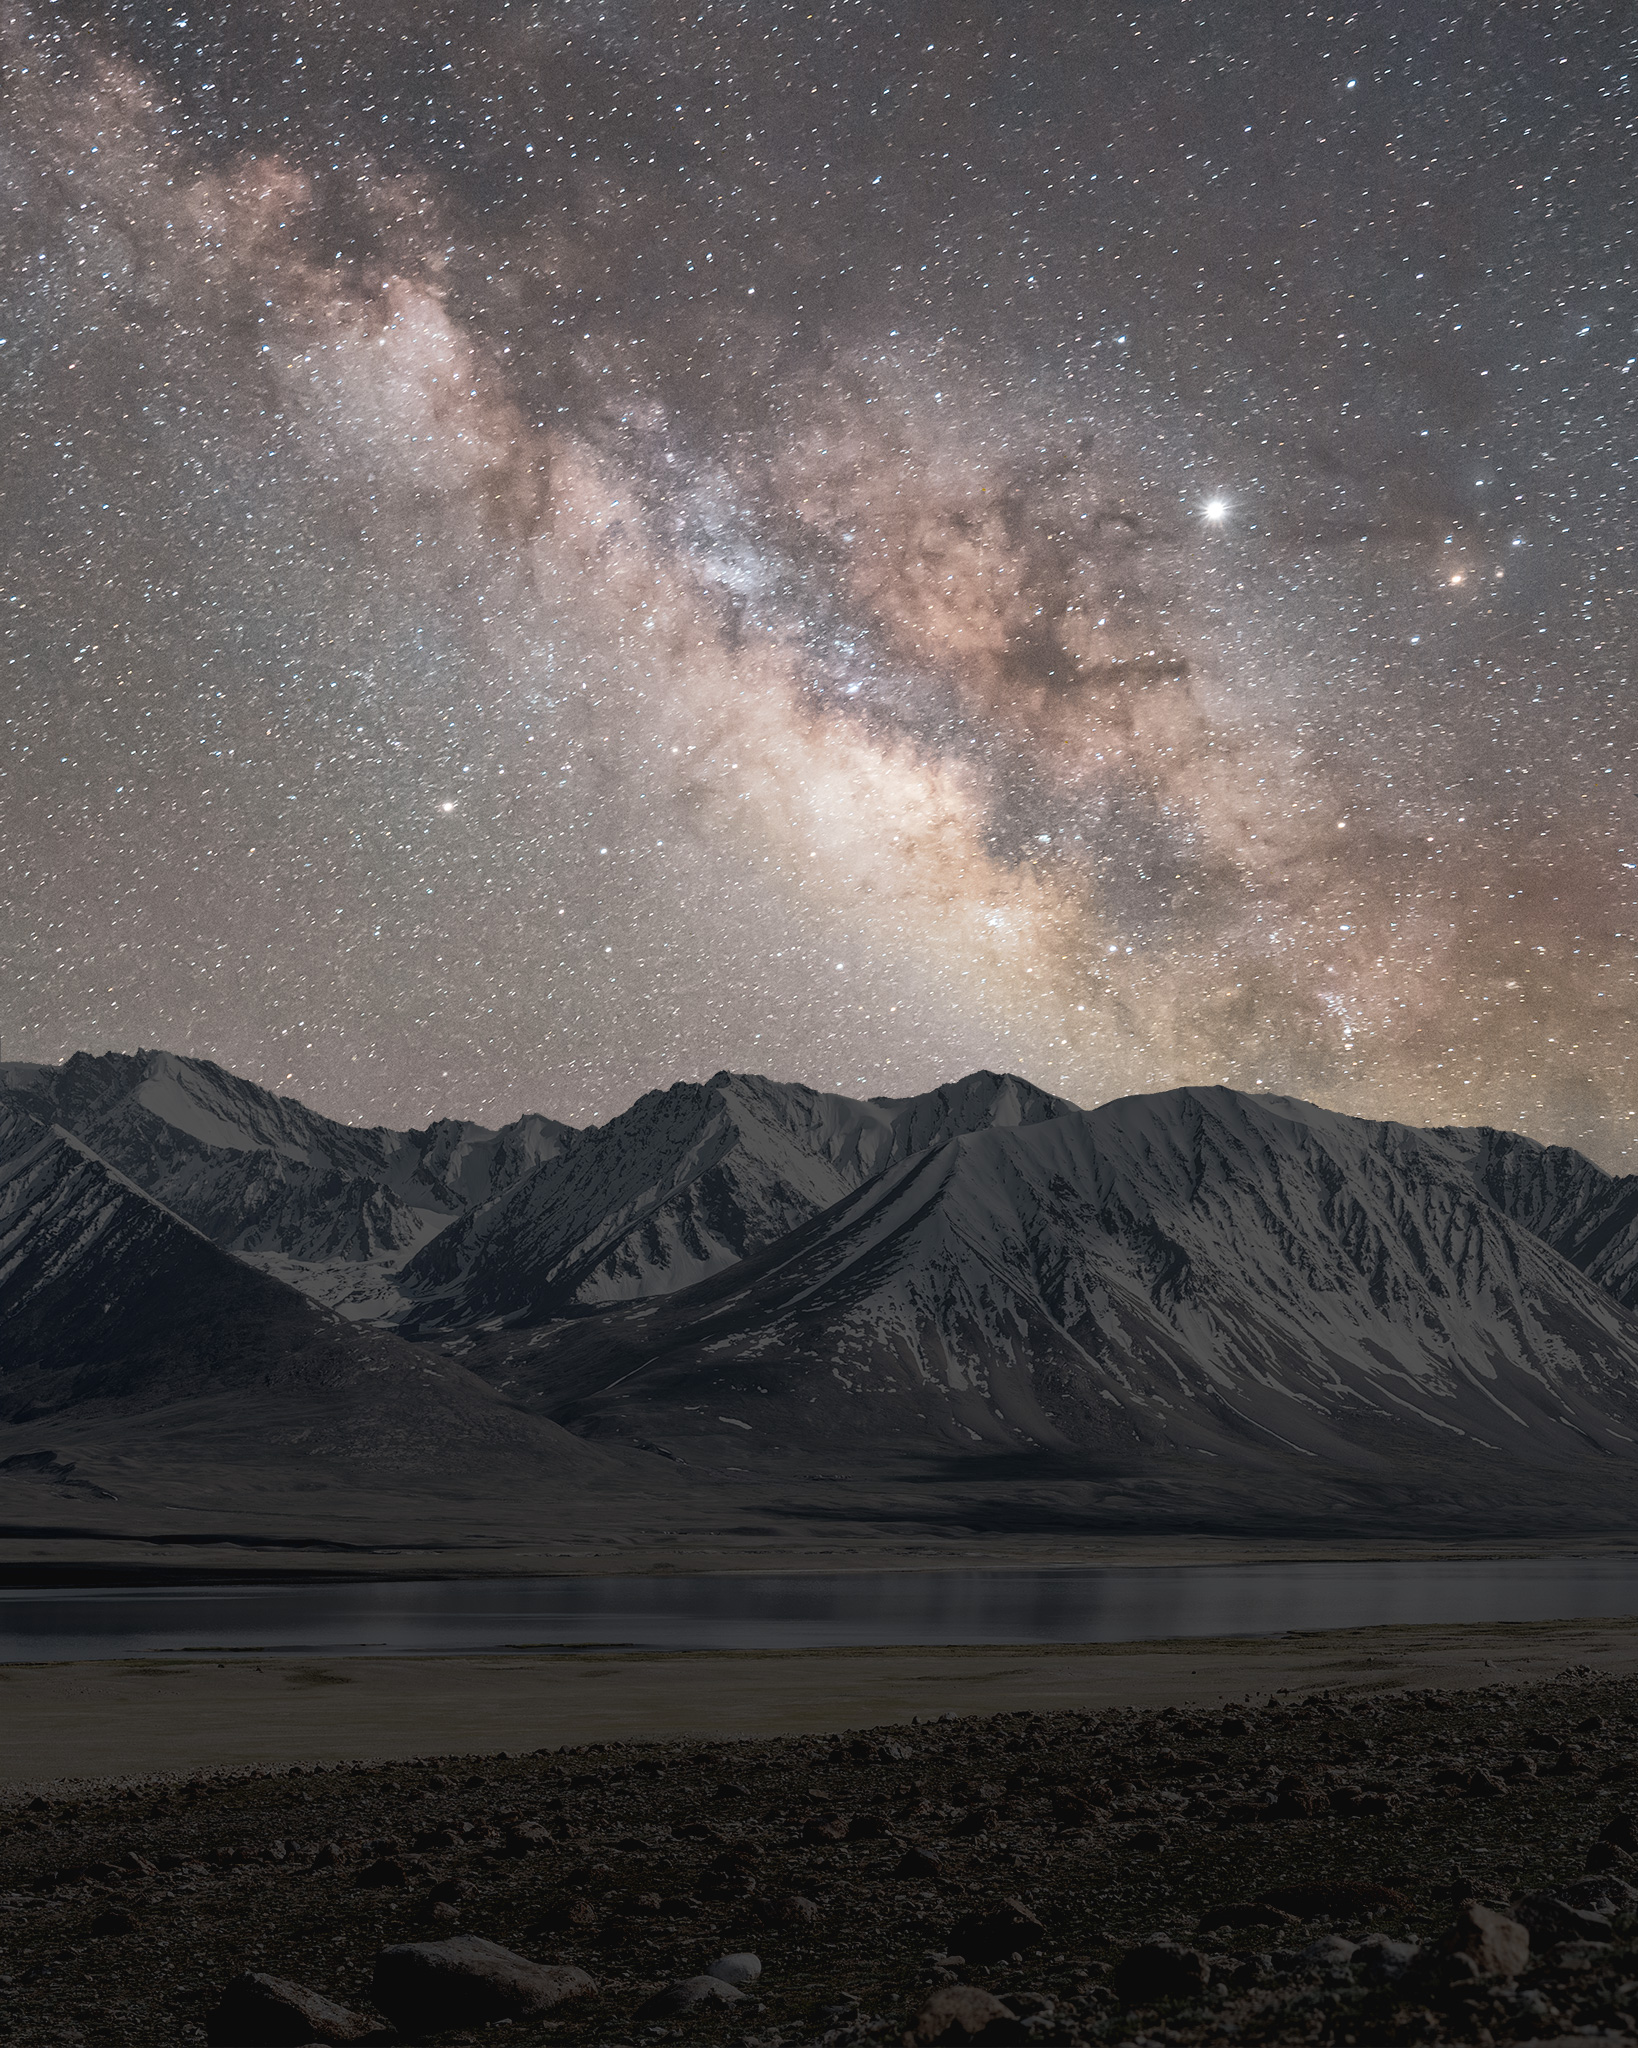 Starry night in the Wakhan Corridor